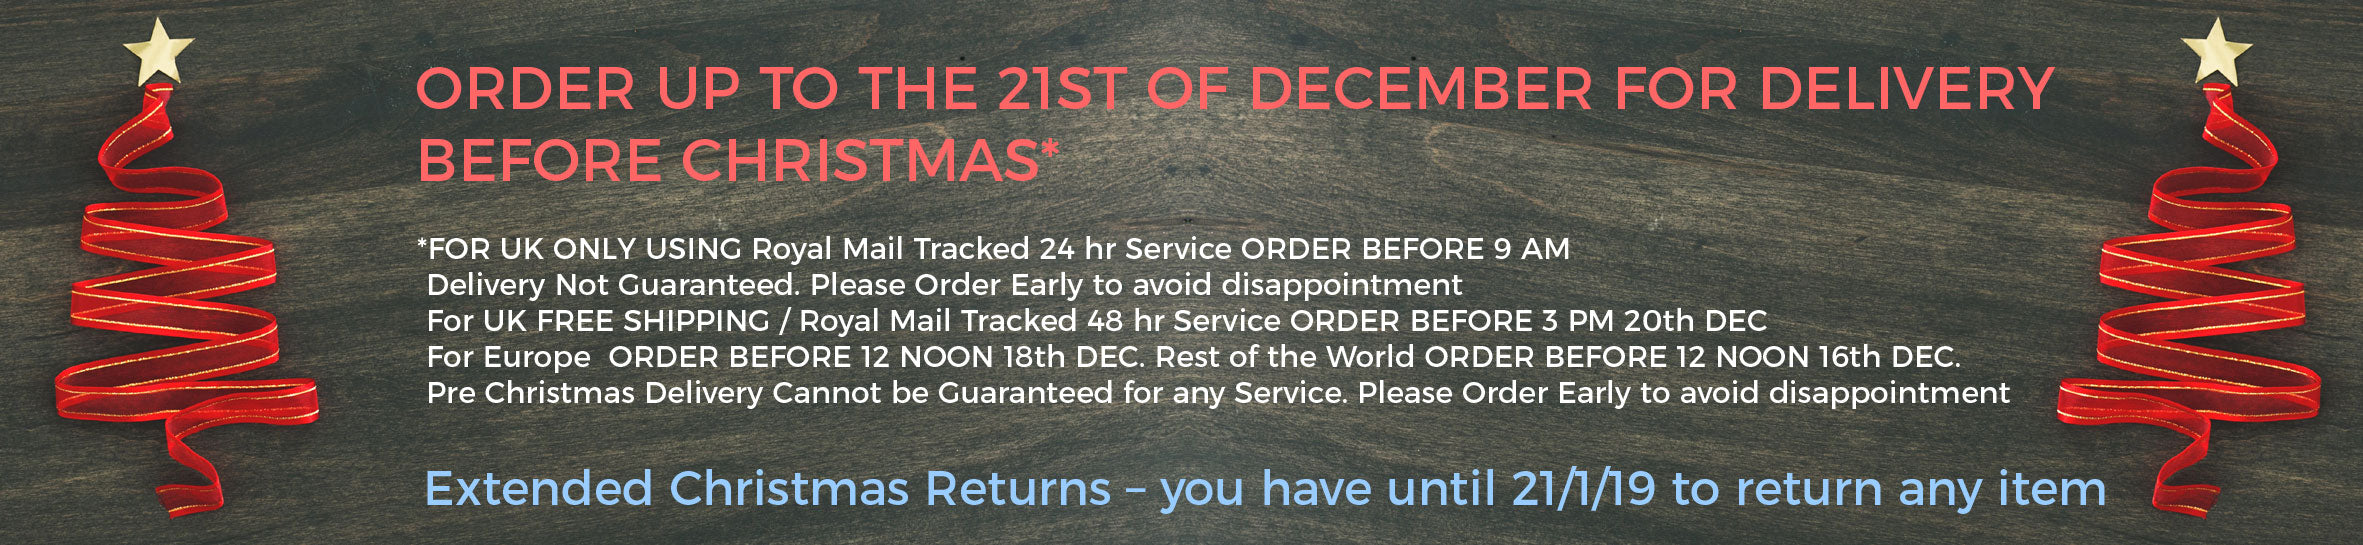 *FOR UK ONLY USING Royal Mail Tracked 24 hr Service ORDER BEFORE 9 AM  Delivery Not Guaranteed. Please Order Early to avoid disappointment  For UK FREE SHIPPING / Royal Mail Tracked 48 hr Service ORDER BEFORE 3 PM 20th DEC  For Europe  ORDER BEFORE 12 NOON 18th DEC. Rest of the World ORDER BEFORE 12 NOON 16th DEC.   Pre Christmas Delivery Cannot be Guaranteed for any Service. Please Order Early to avoid disappointment